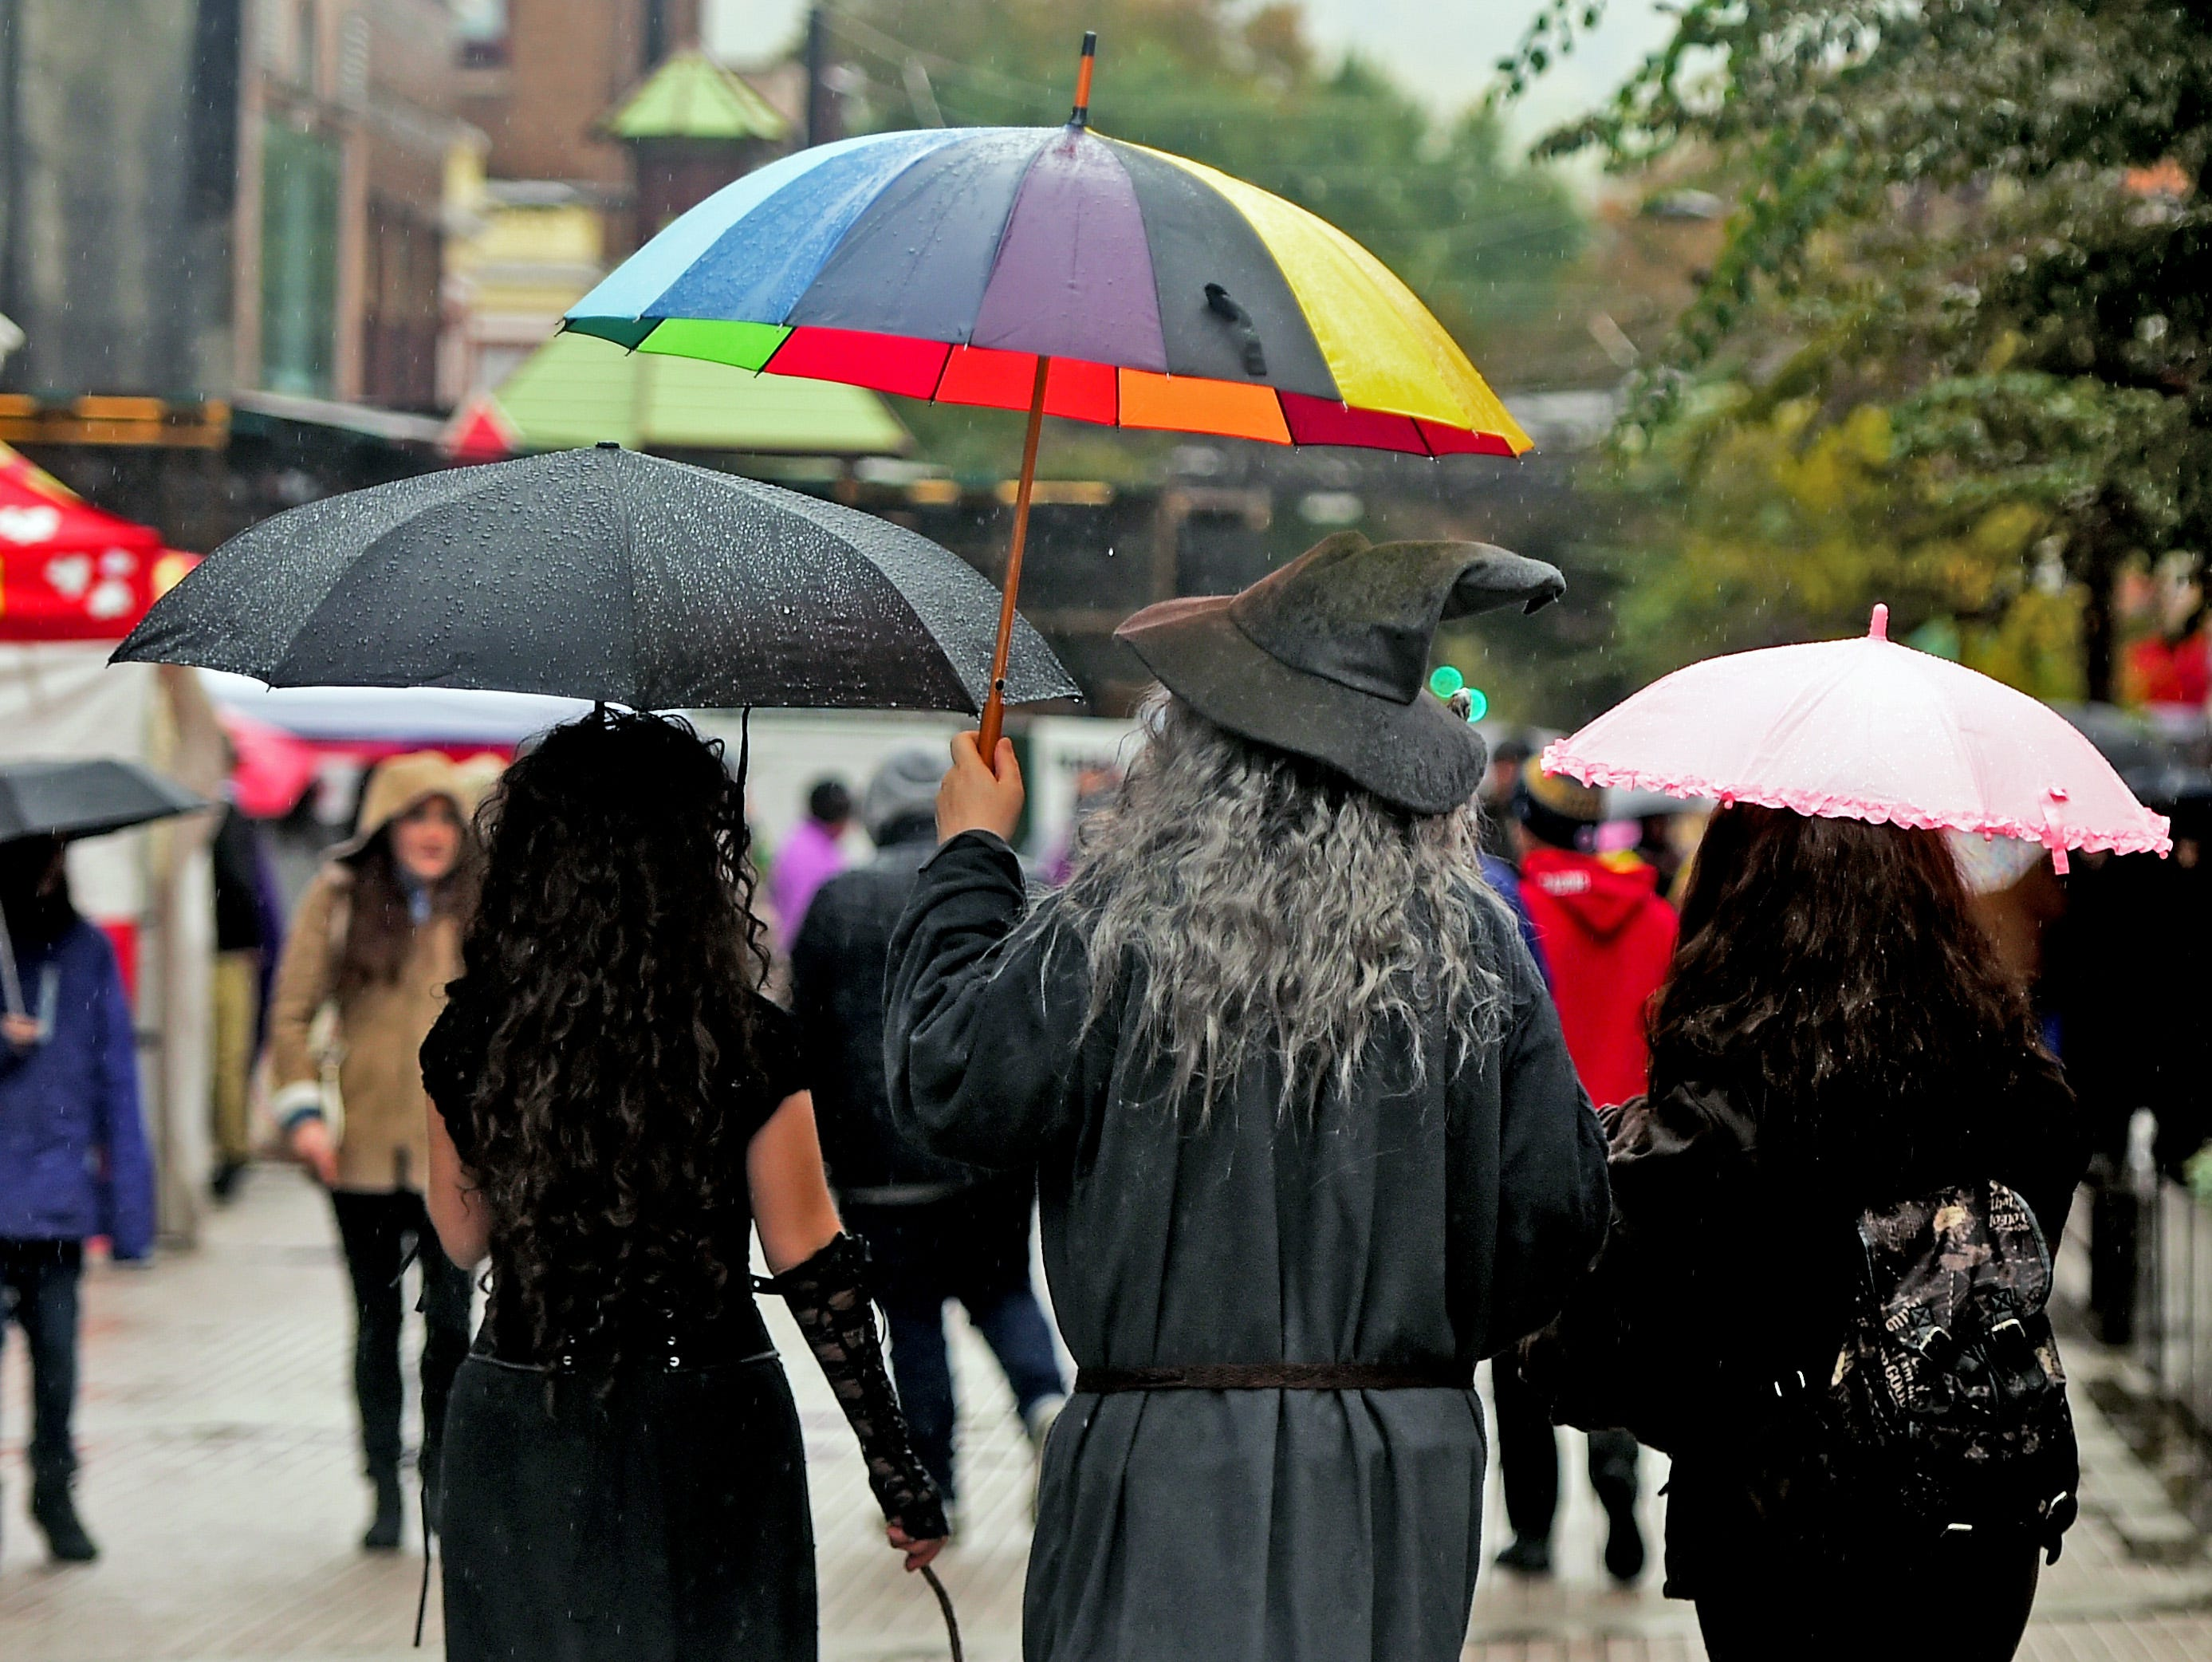 Wizarding Weekend, a family-friendly Halloween festival featuring magic, costumes, STEM activities, street vendors and celebrity appearances, returned to downtown Ithaca on Saturday, October 27, 2018.